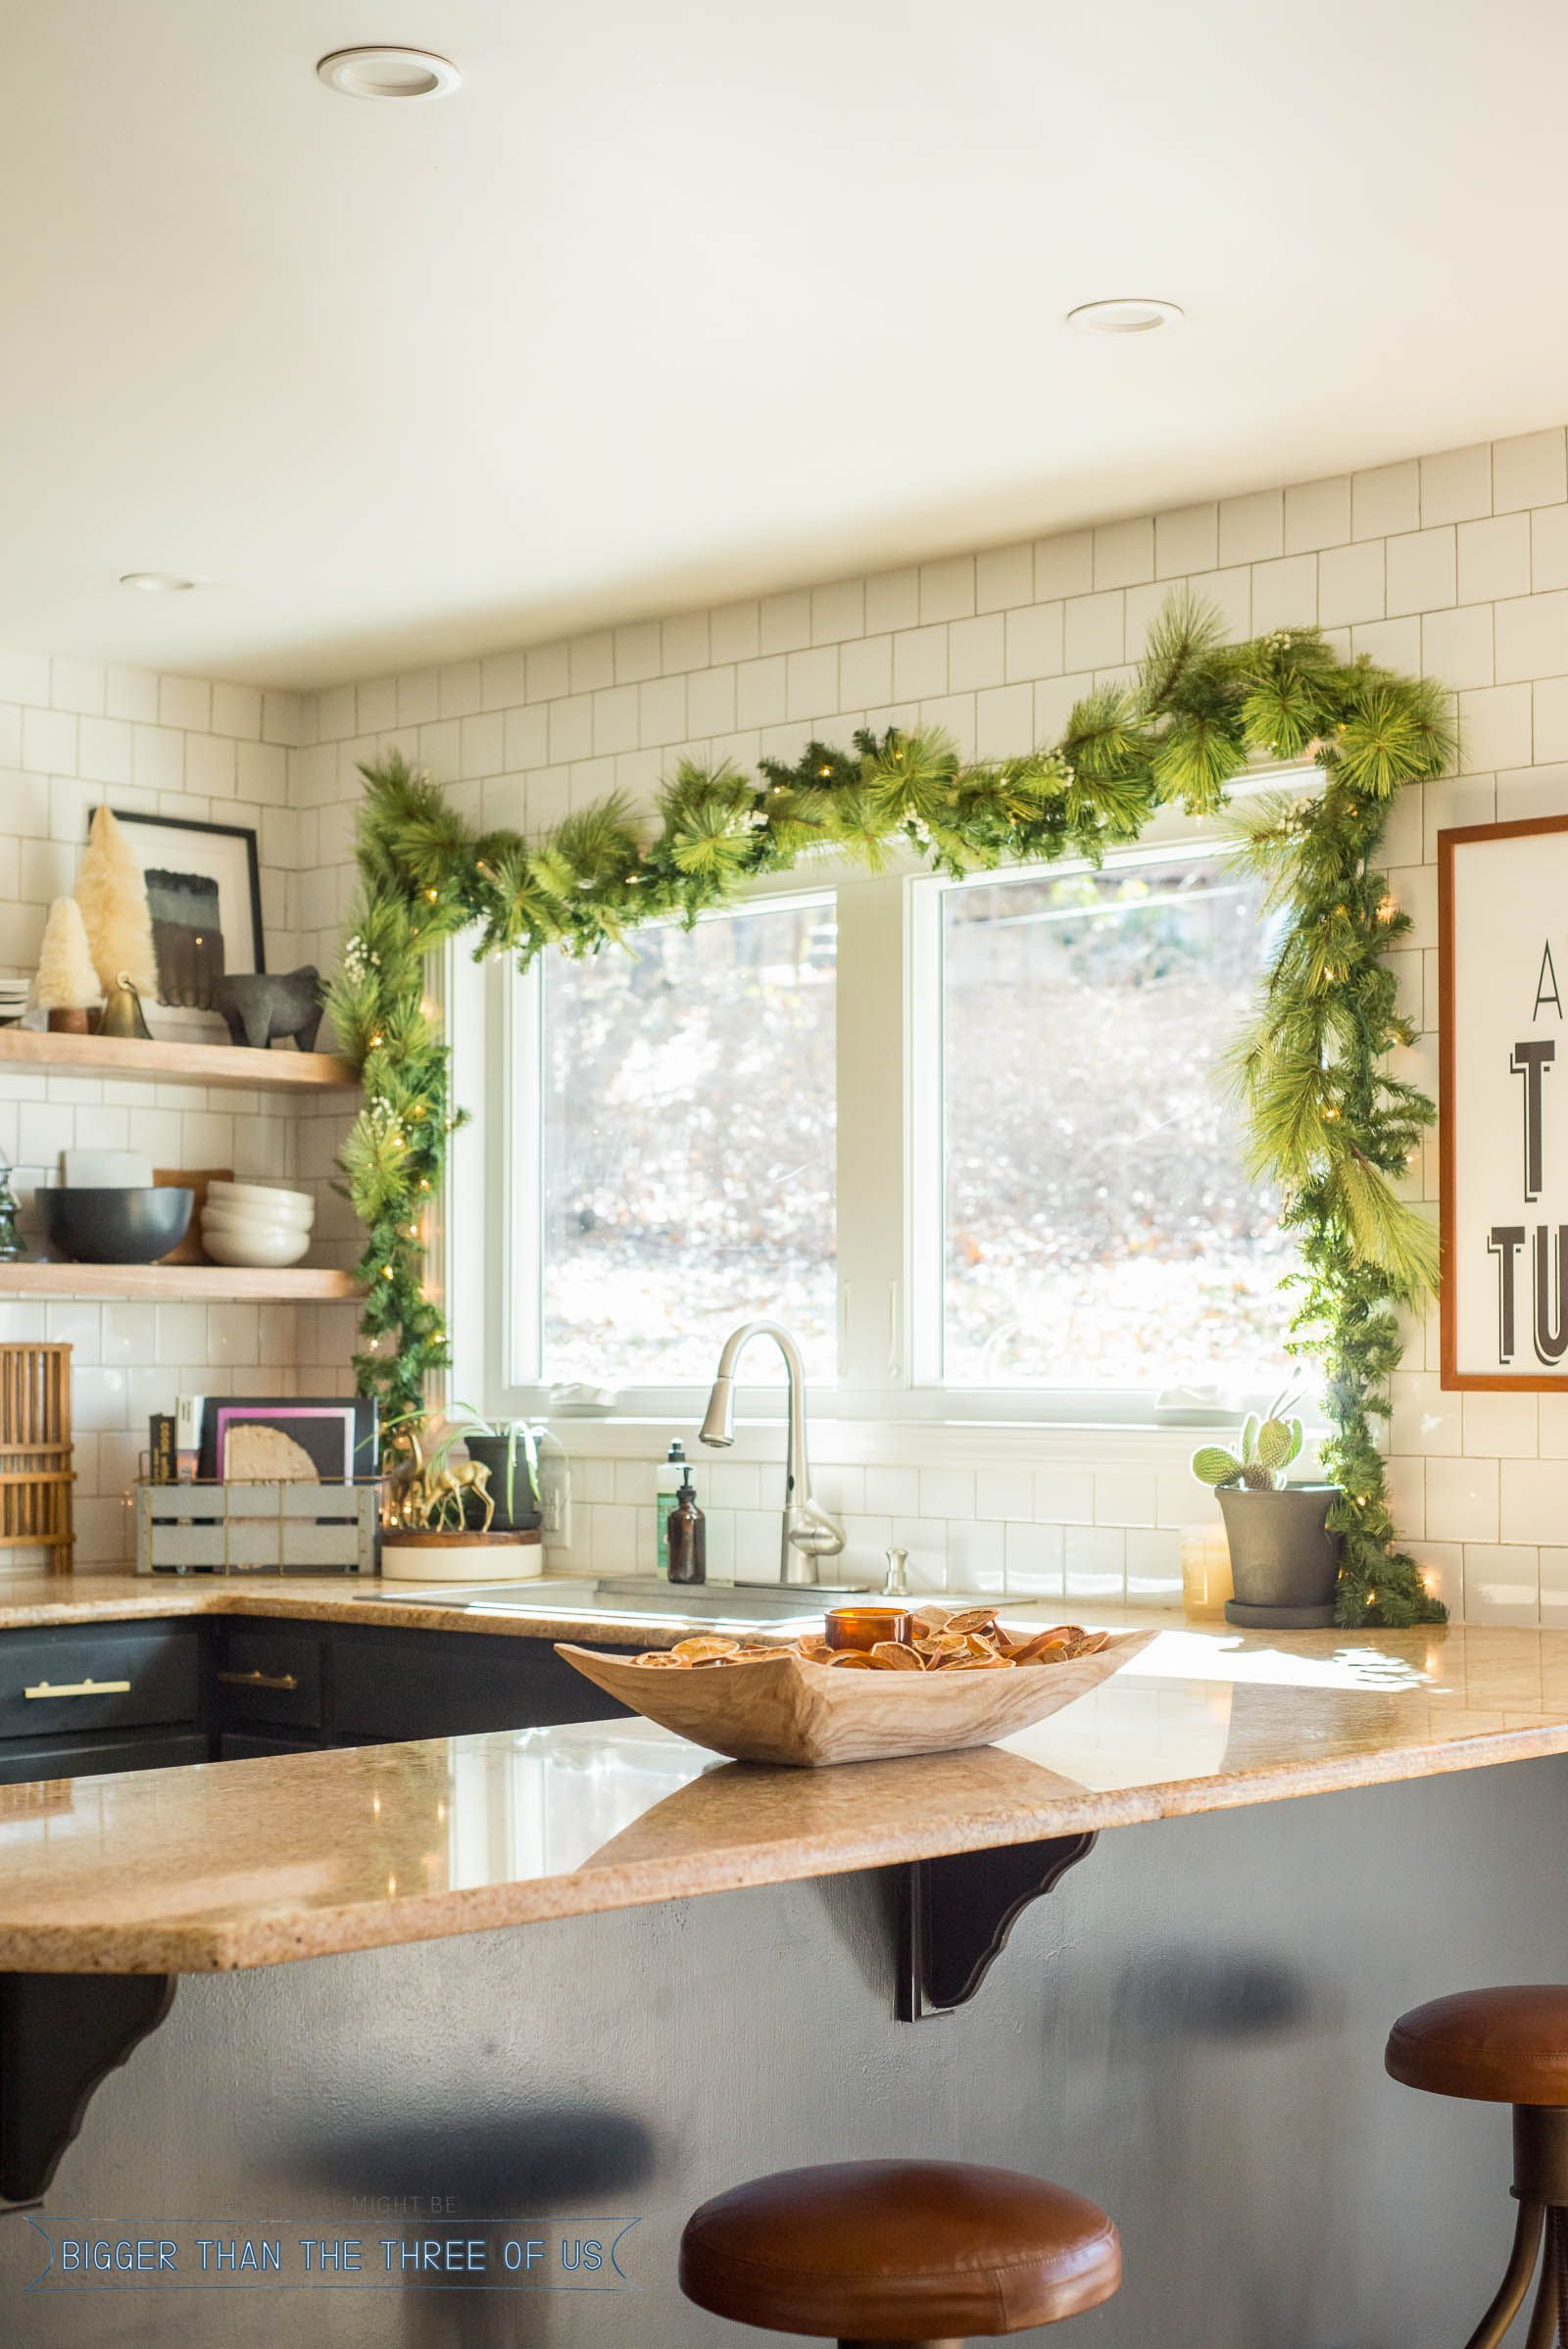 Christmas swag over kitchen windows with dried oranges in  bowl on granite countertop also interior house paint colors diy projects modern simple rh pinterest